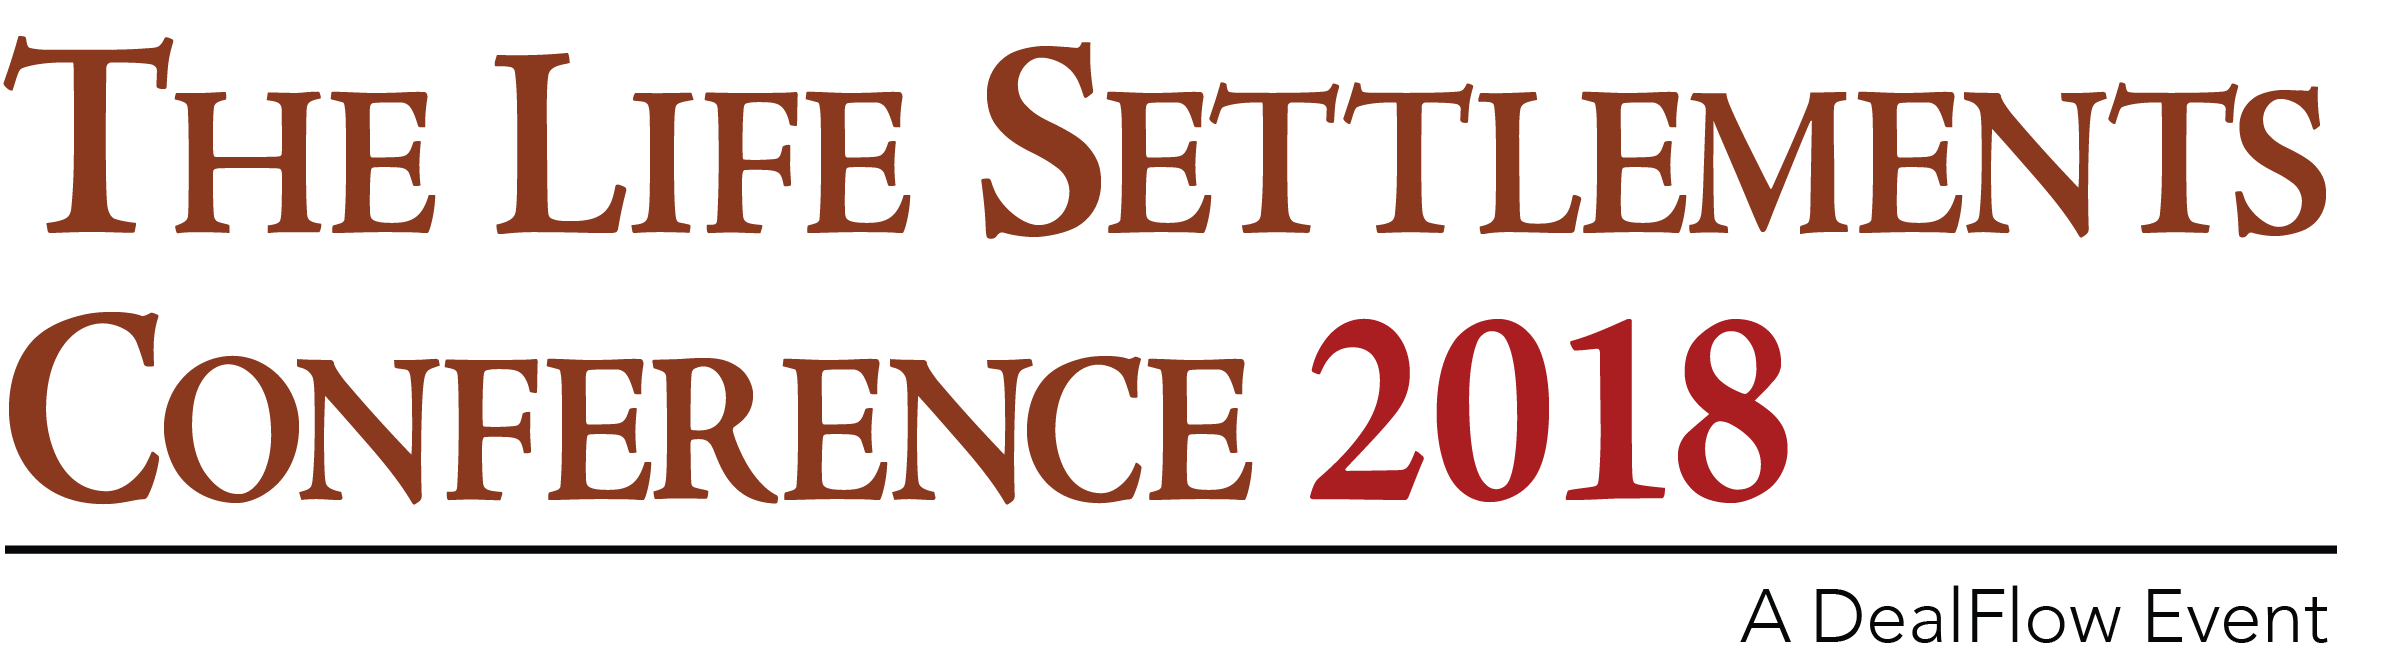 The Life Settlements Conference 2018 - A DealFlow Event